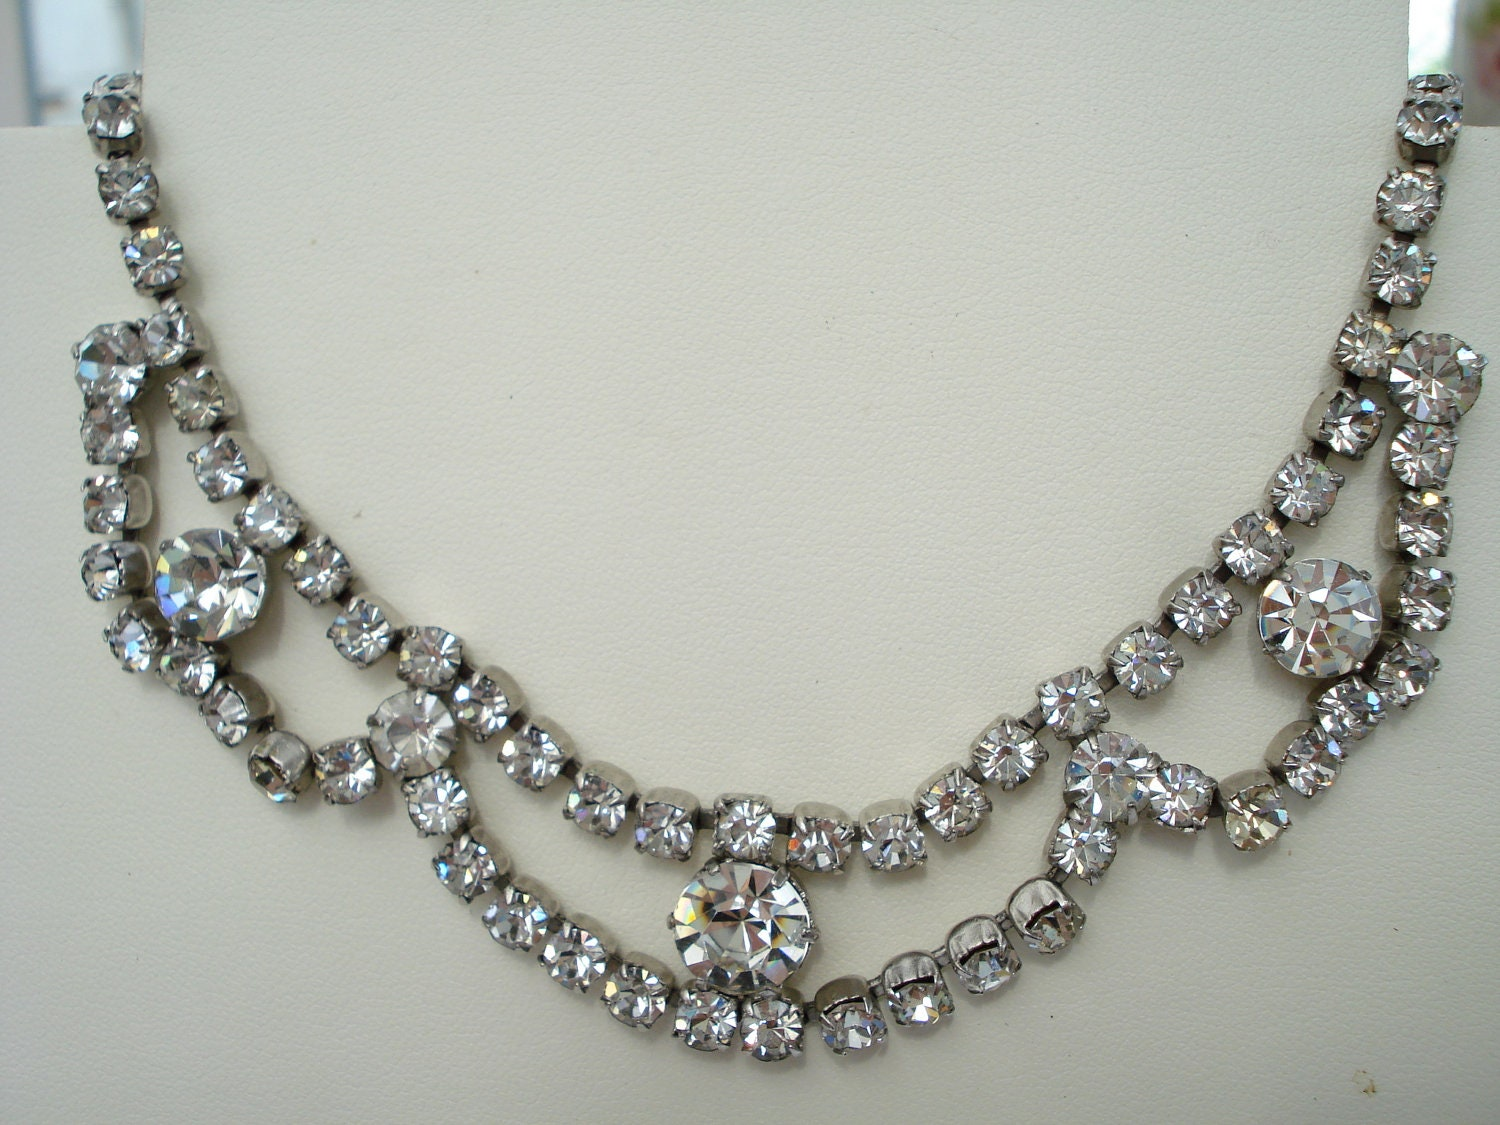 Rhinestone Necklace. Rhinestone jewelry is an affordable option when you want pieces to match particular outfits without spending a fortune on more expensive items. A rhinestone necklace can last a long time when it's properly cared for.